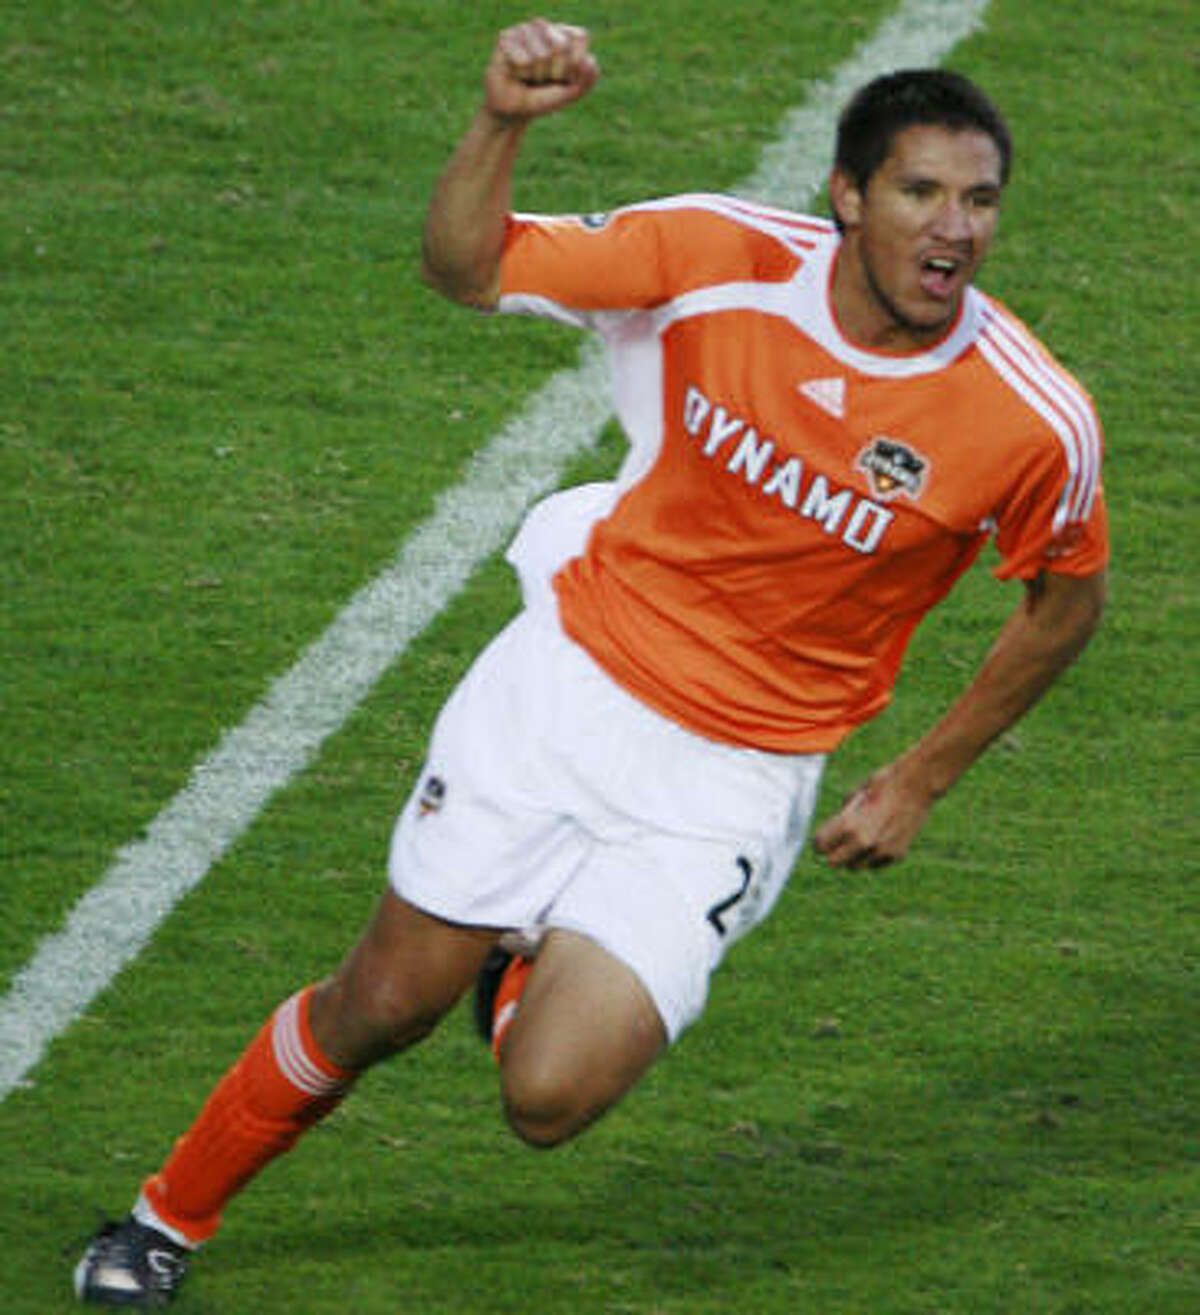 It took the Dynamo a long time to get on the board. Brian Ching made it happen in the second overtime.